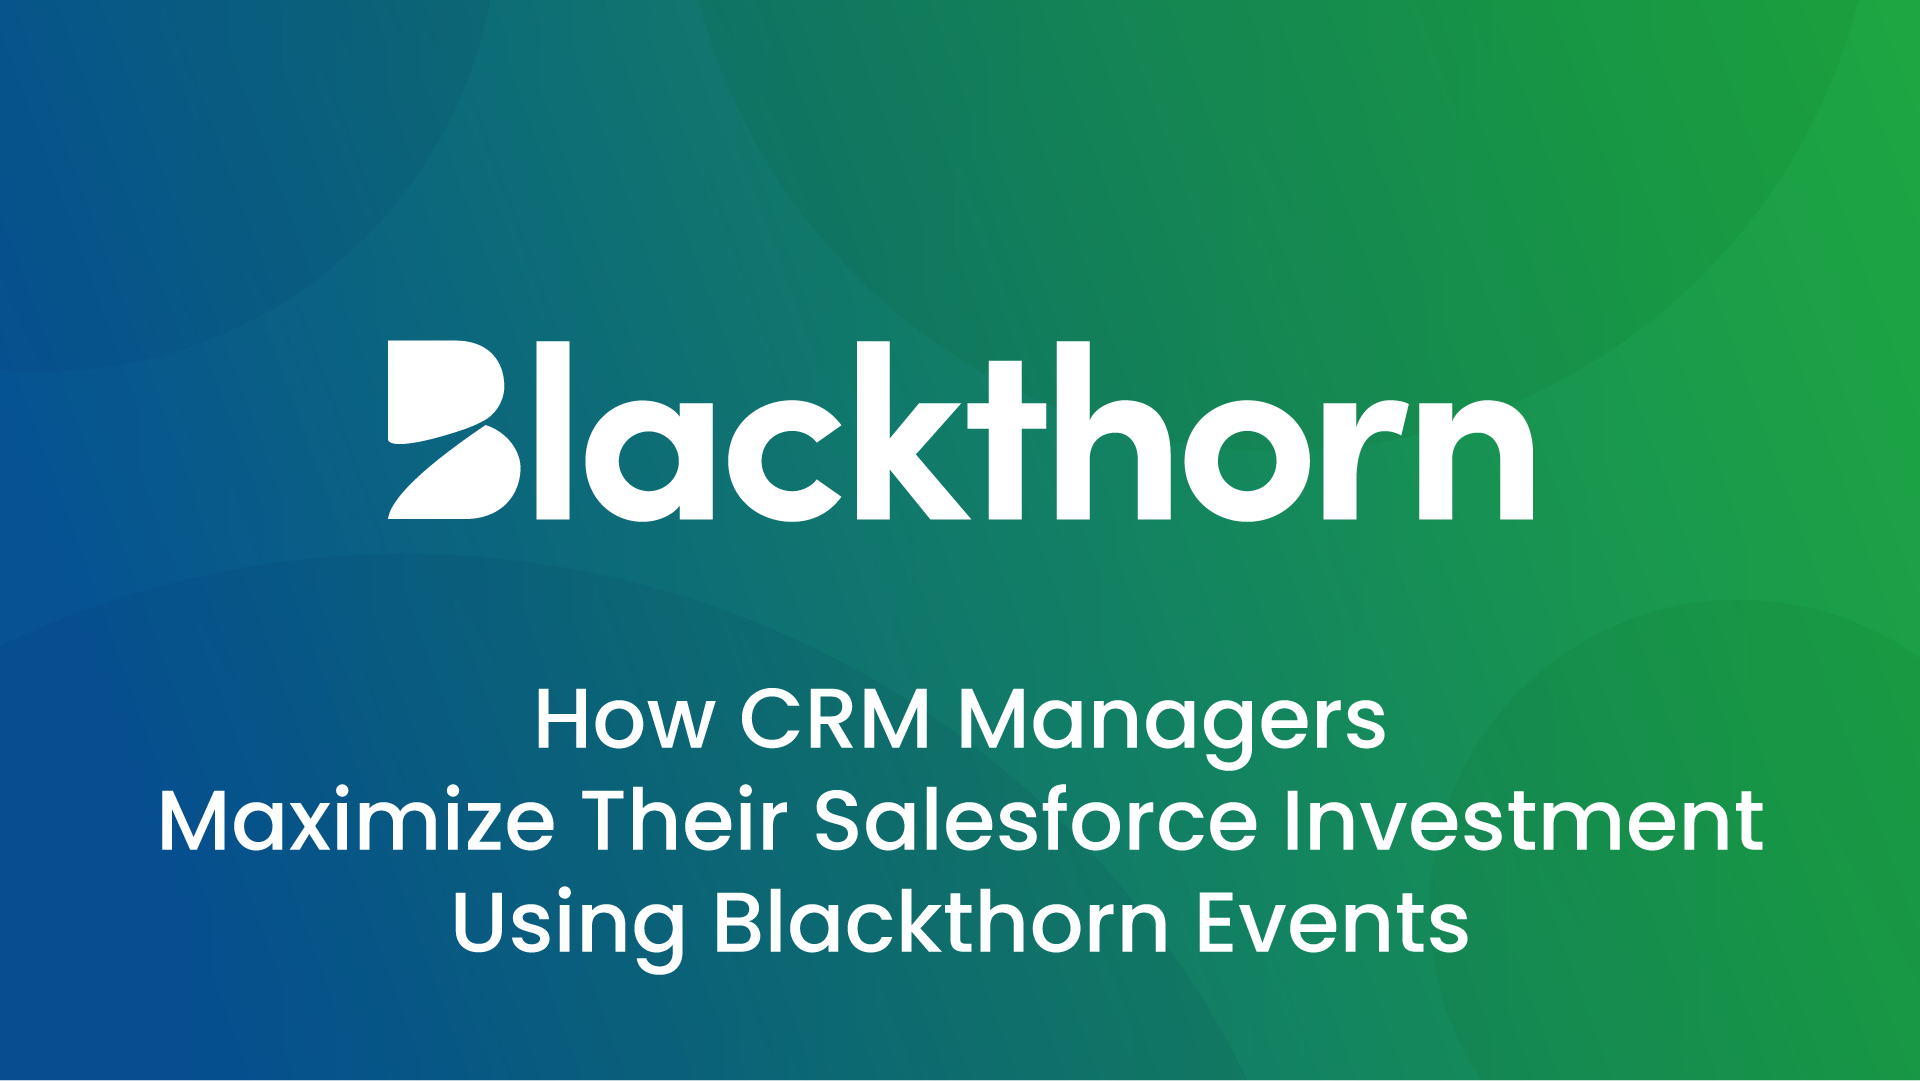 How CRM Managers maximize their Salesforce investment using Blackthorn EVents